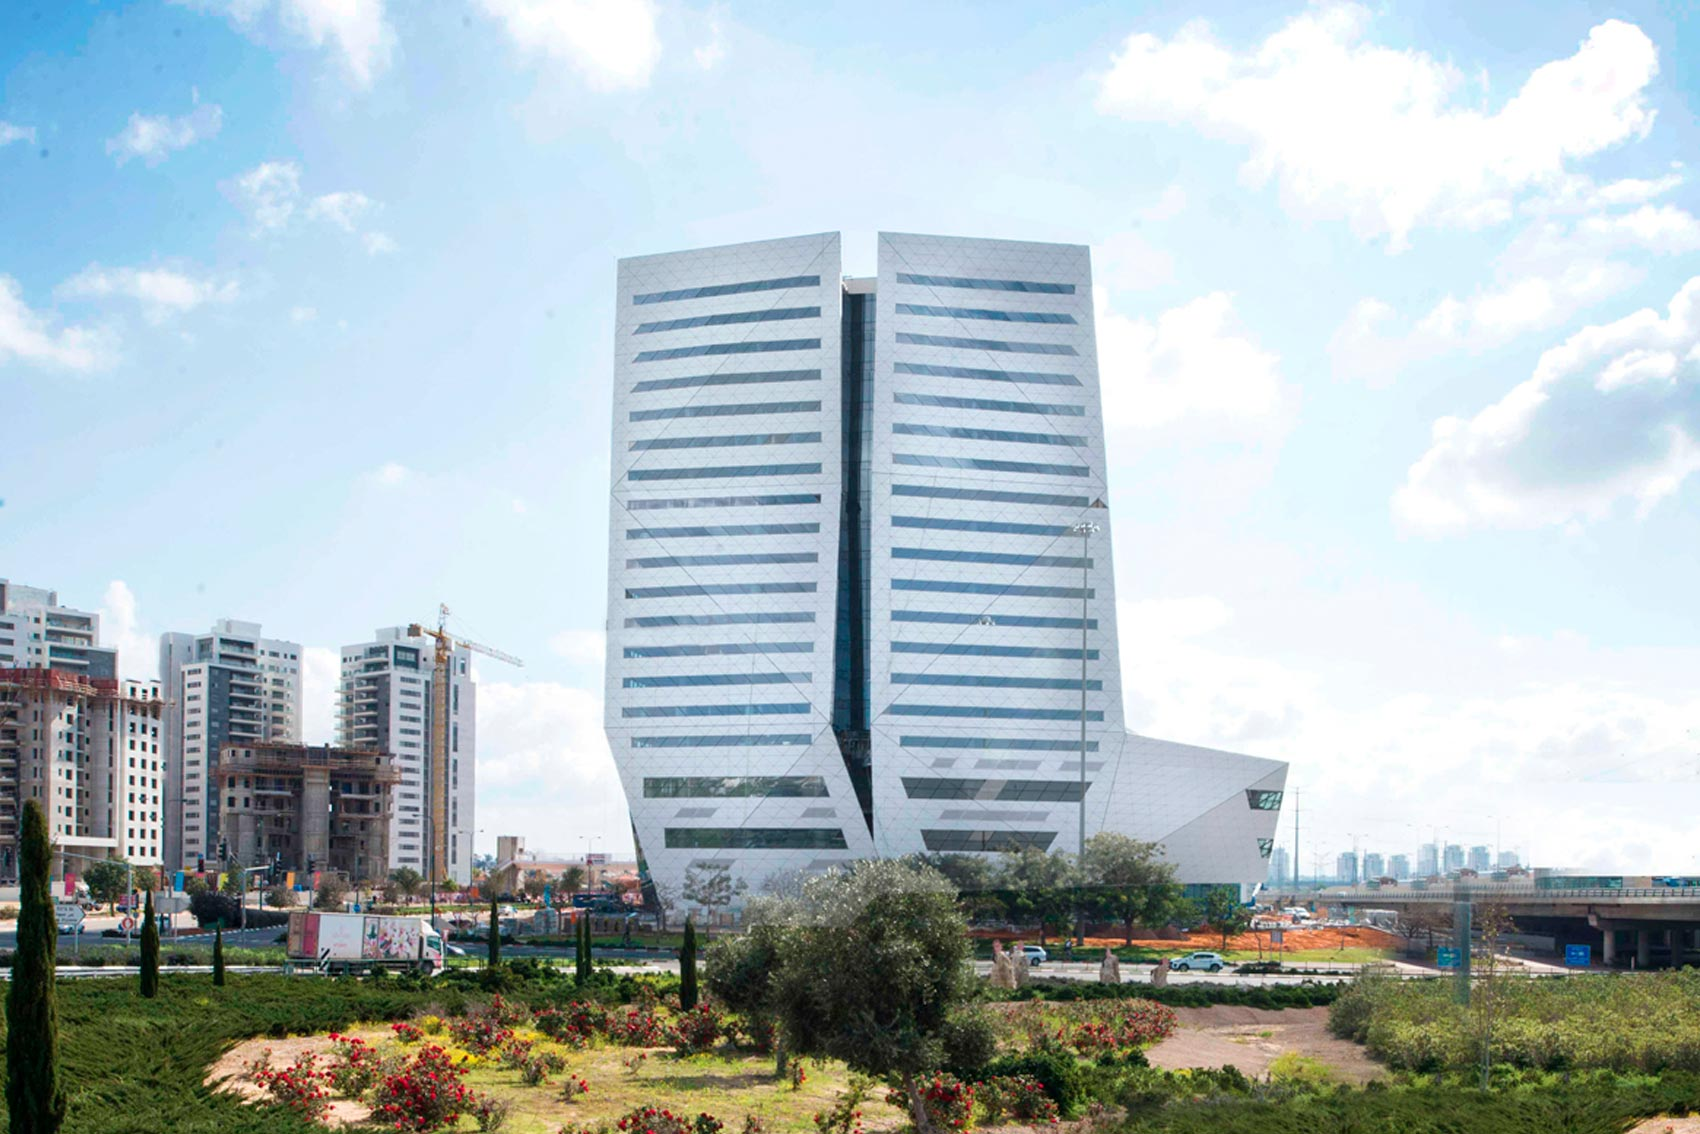 Gualini Azrieli Rishonim Center